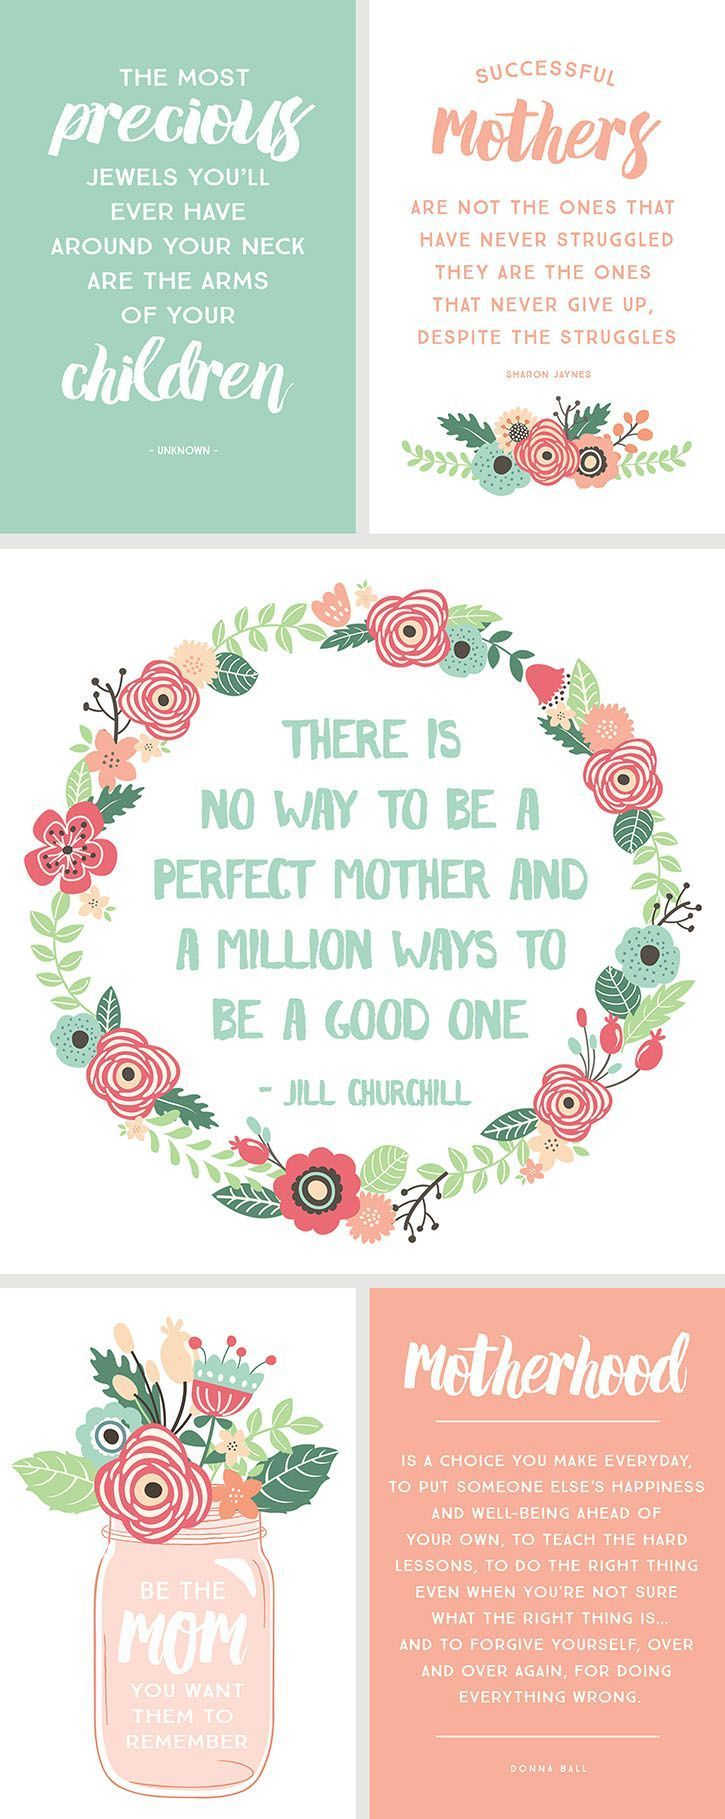 5 Free Inspirational Quotes for Mother's Day | Simple As That...